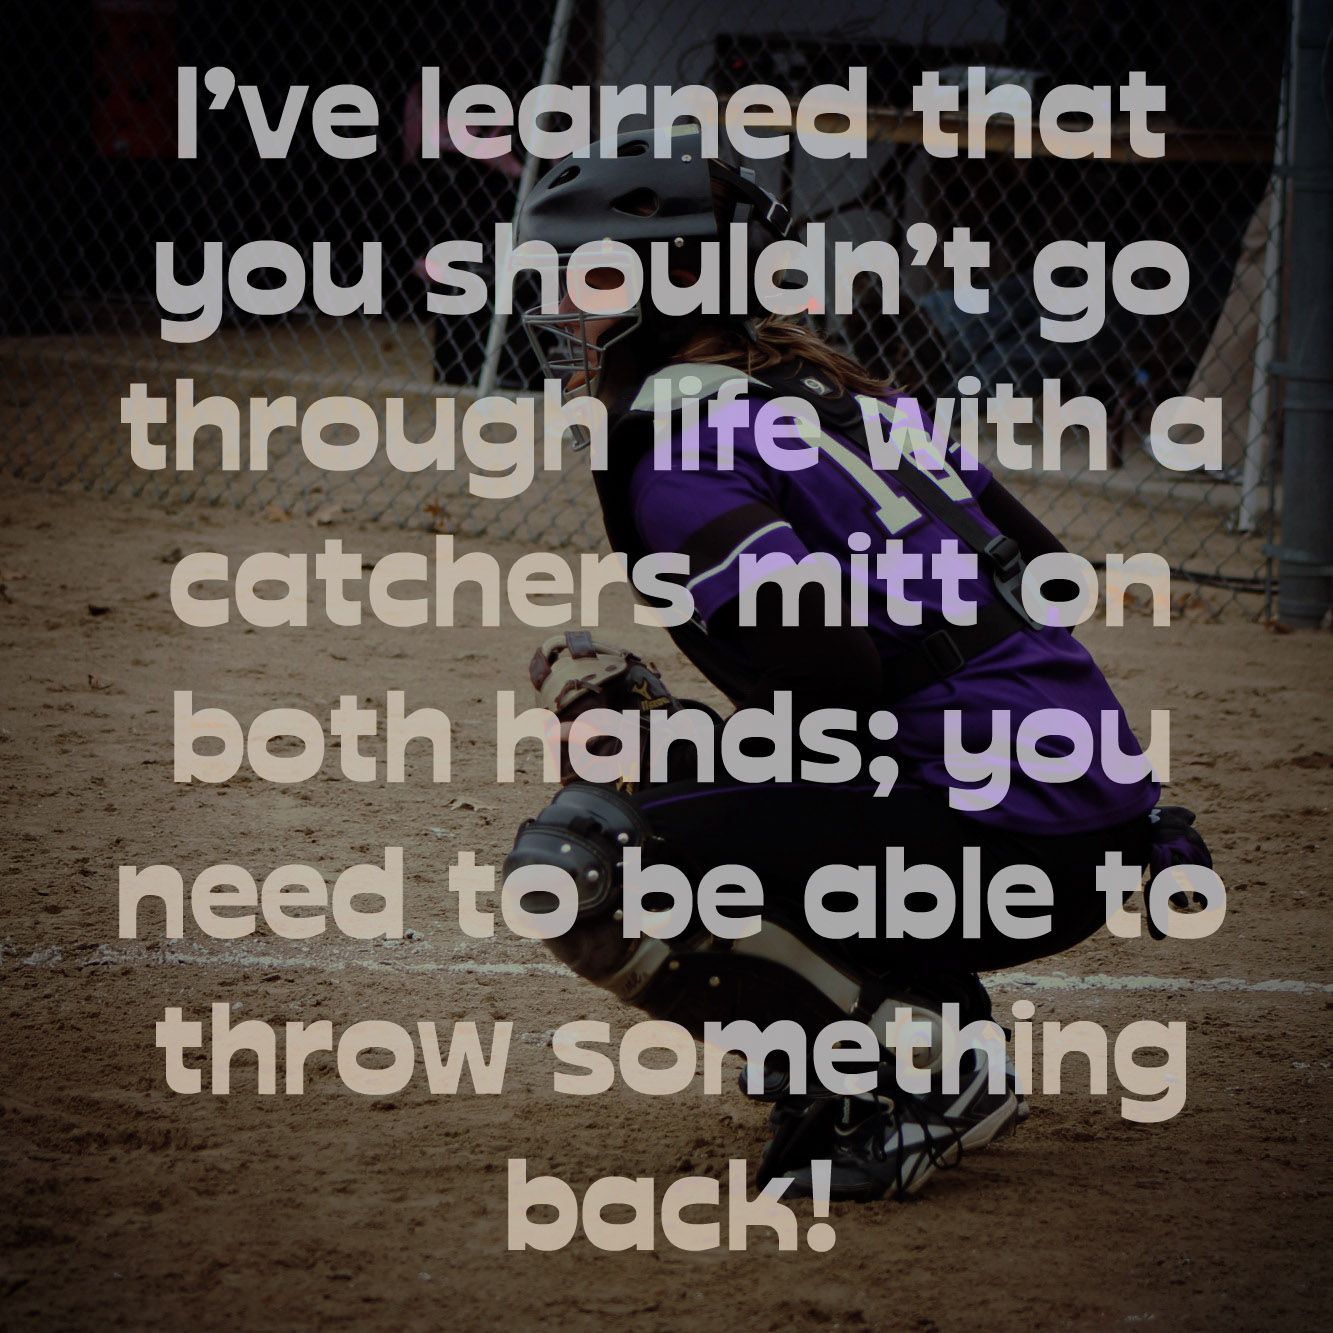 Baseball Quotes About Life I've Learned That You Shouldn't Go Through Life With A Catchers